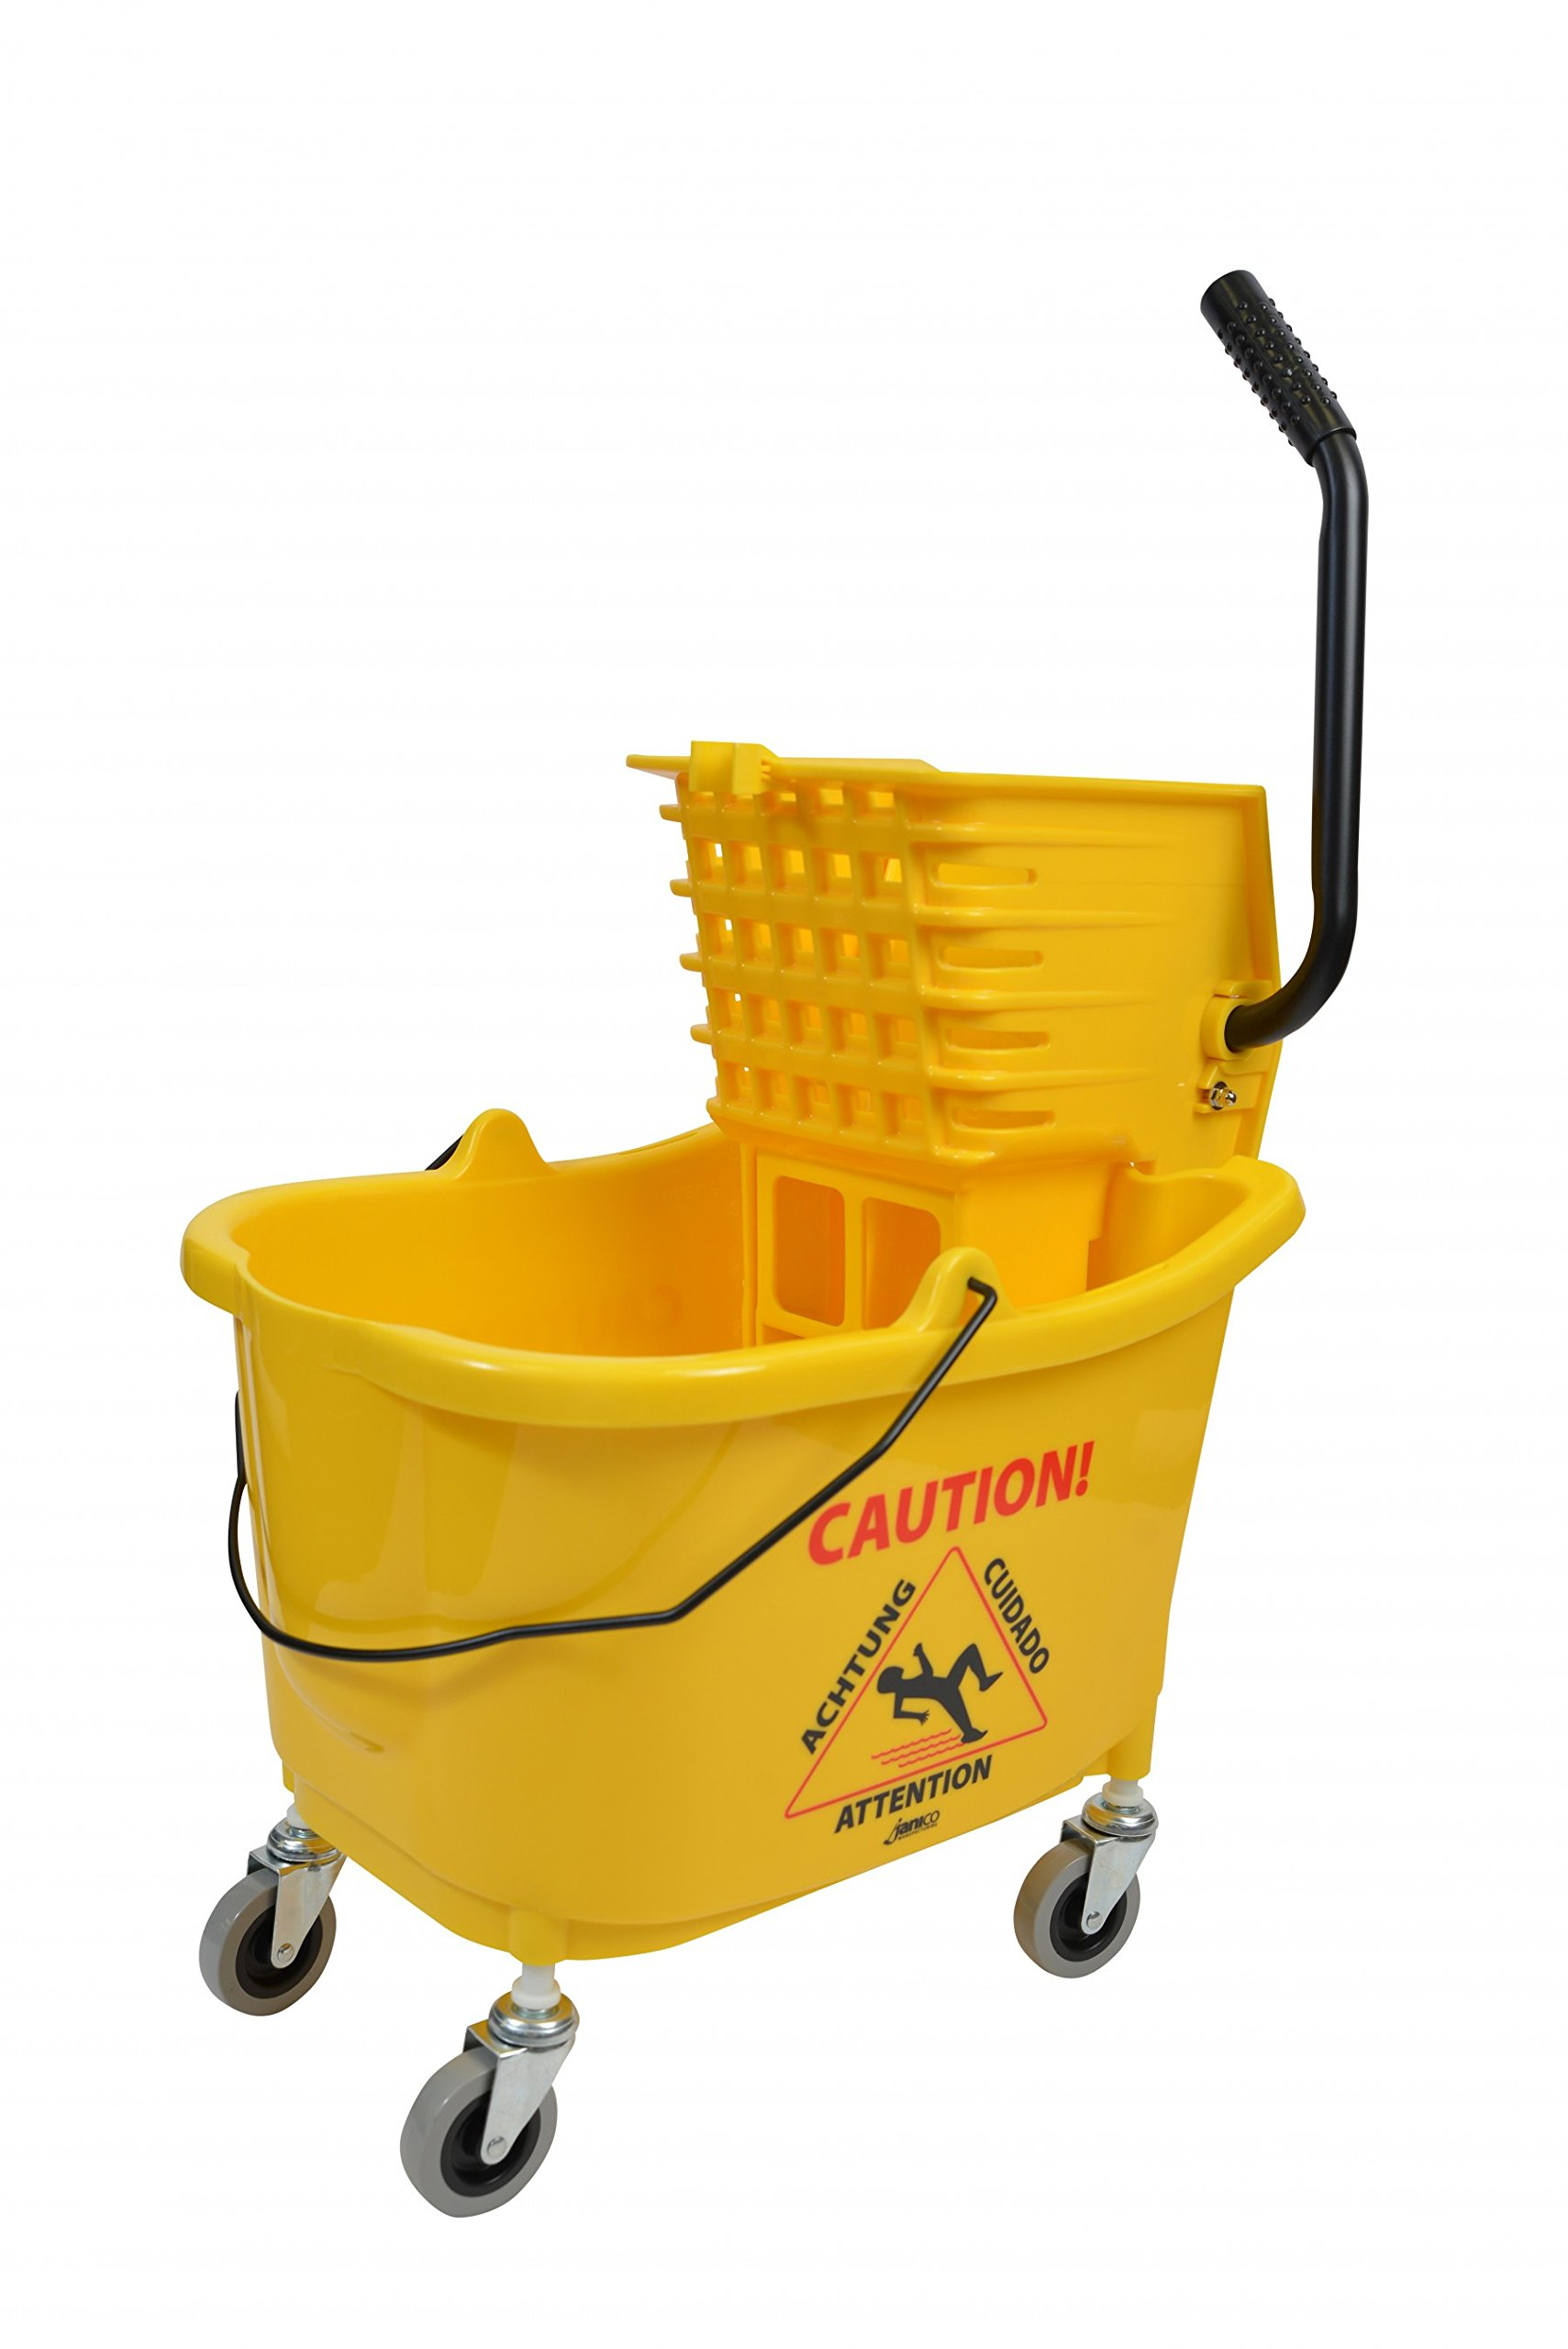 Janico 1010 Mop Bucket Side Press Wringer Combo, 35 Quart, 8.5 gal, Plastic, Yellow